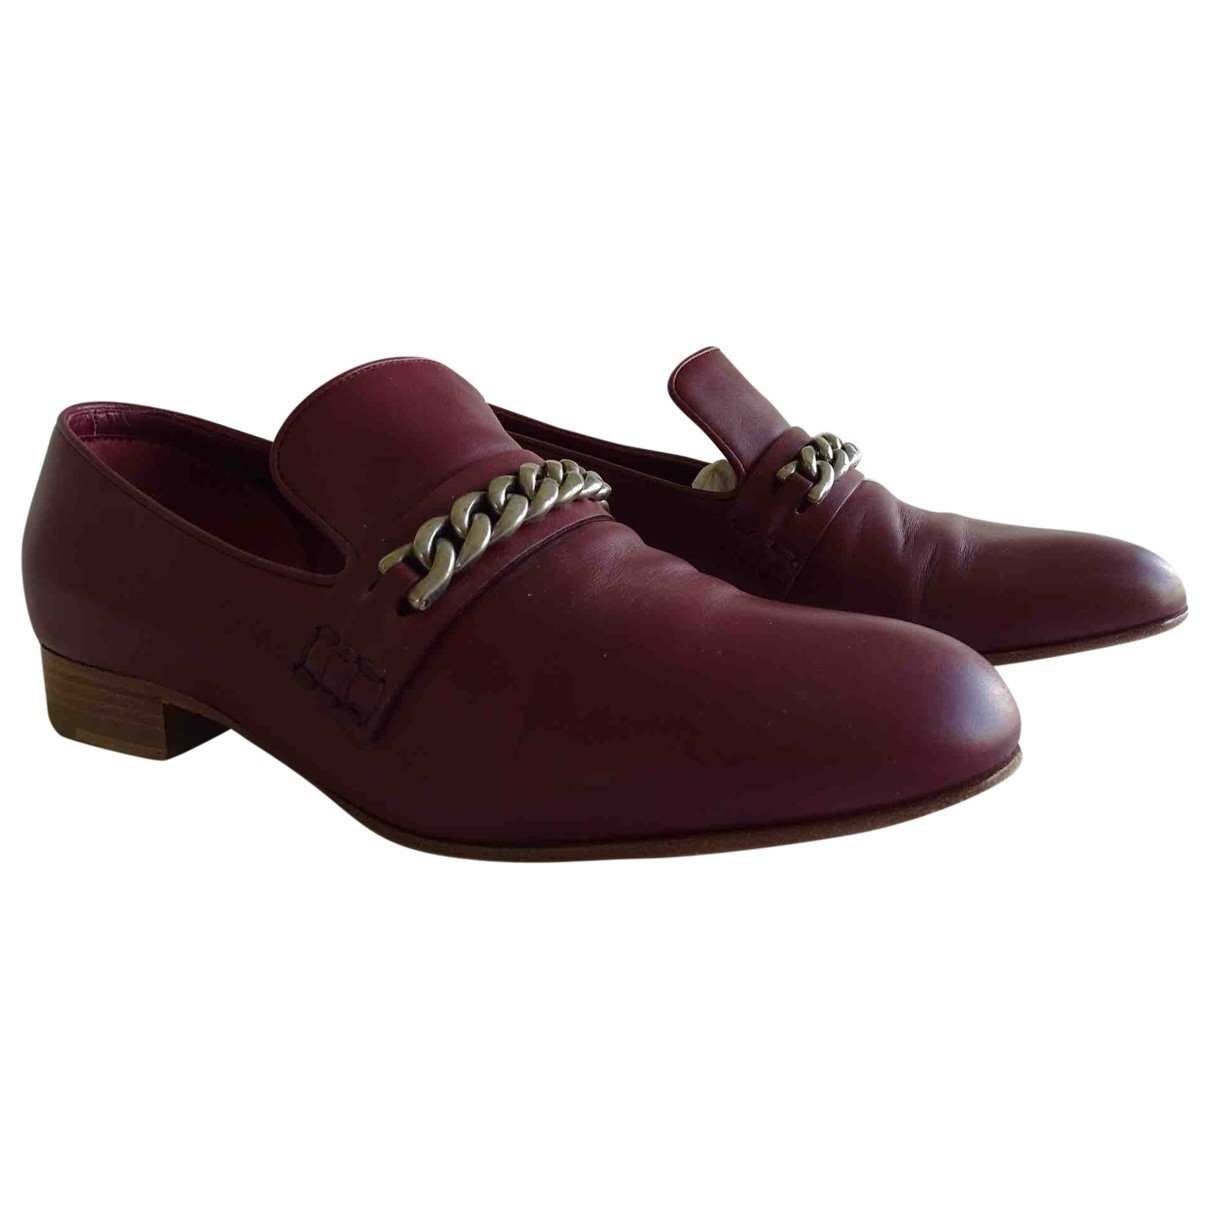 Celine \N Burgundy Leather Flats for Women 37 EU